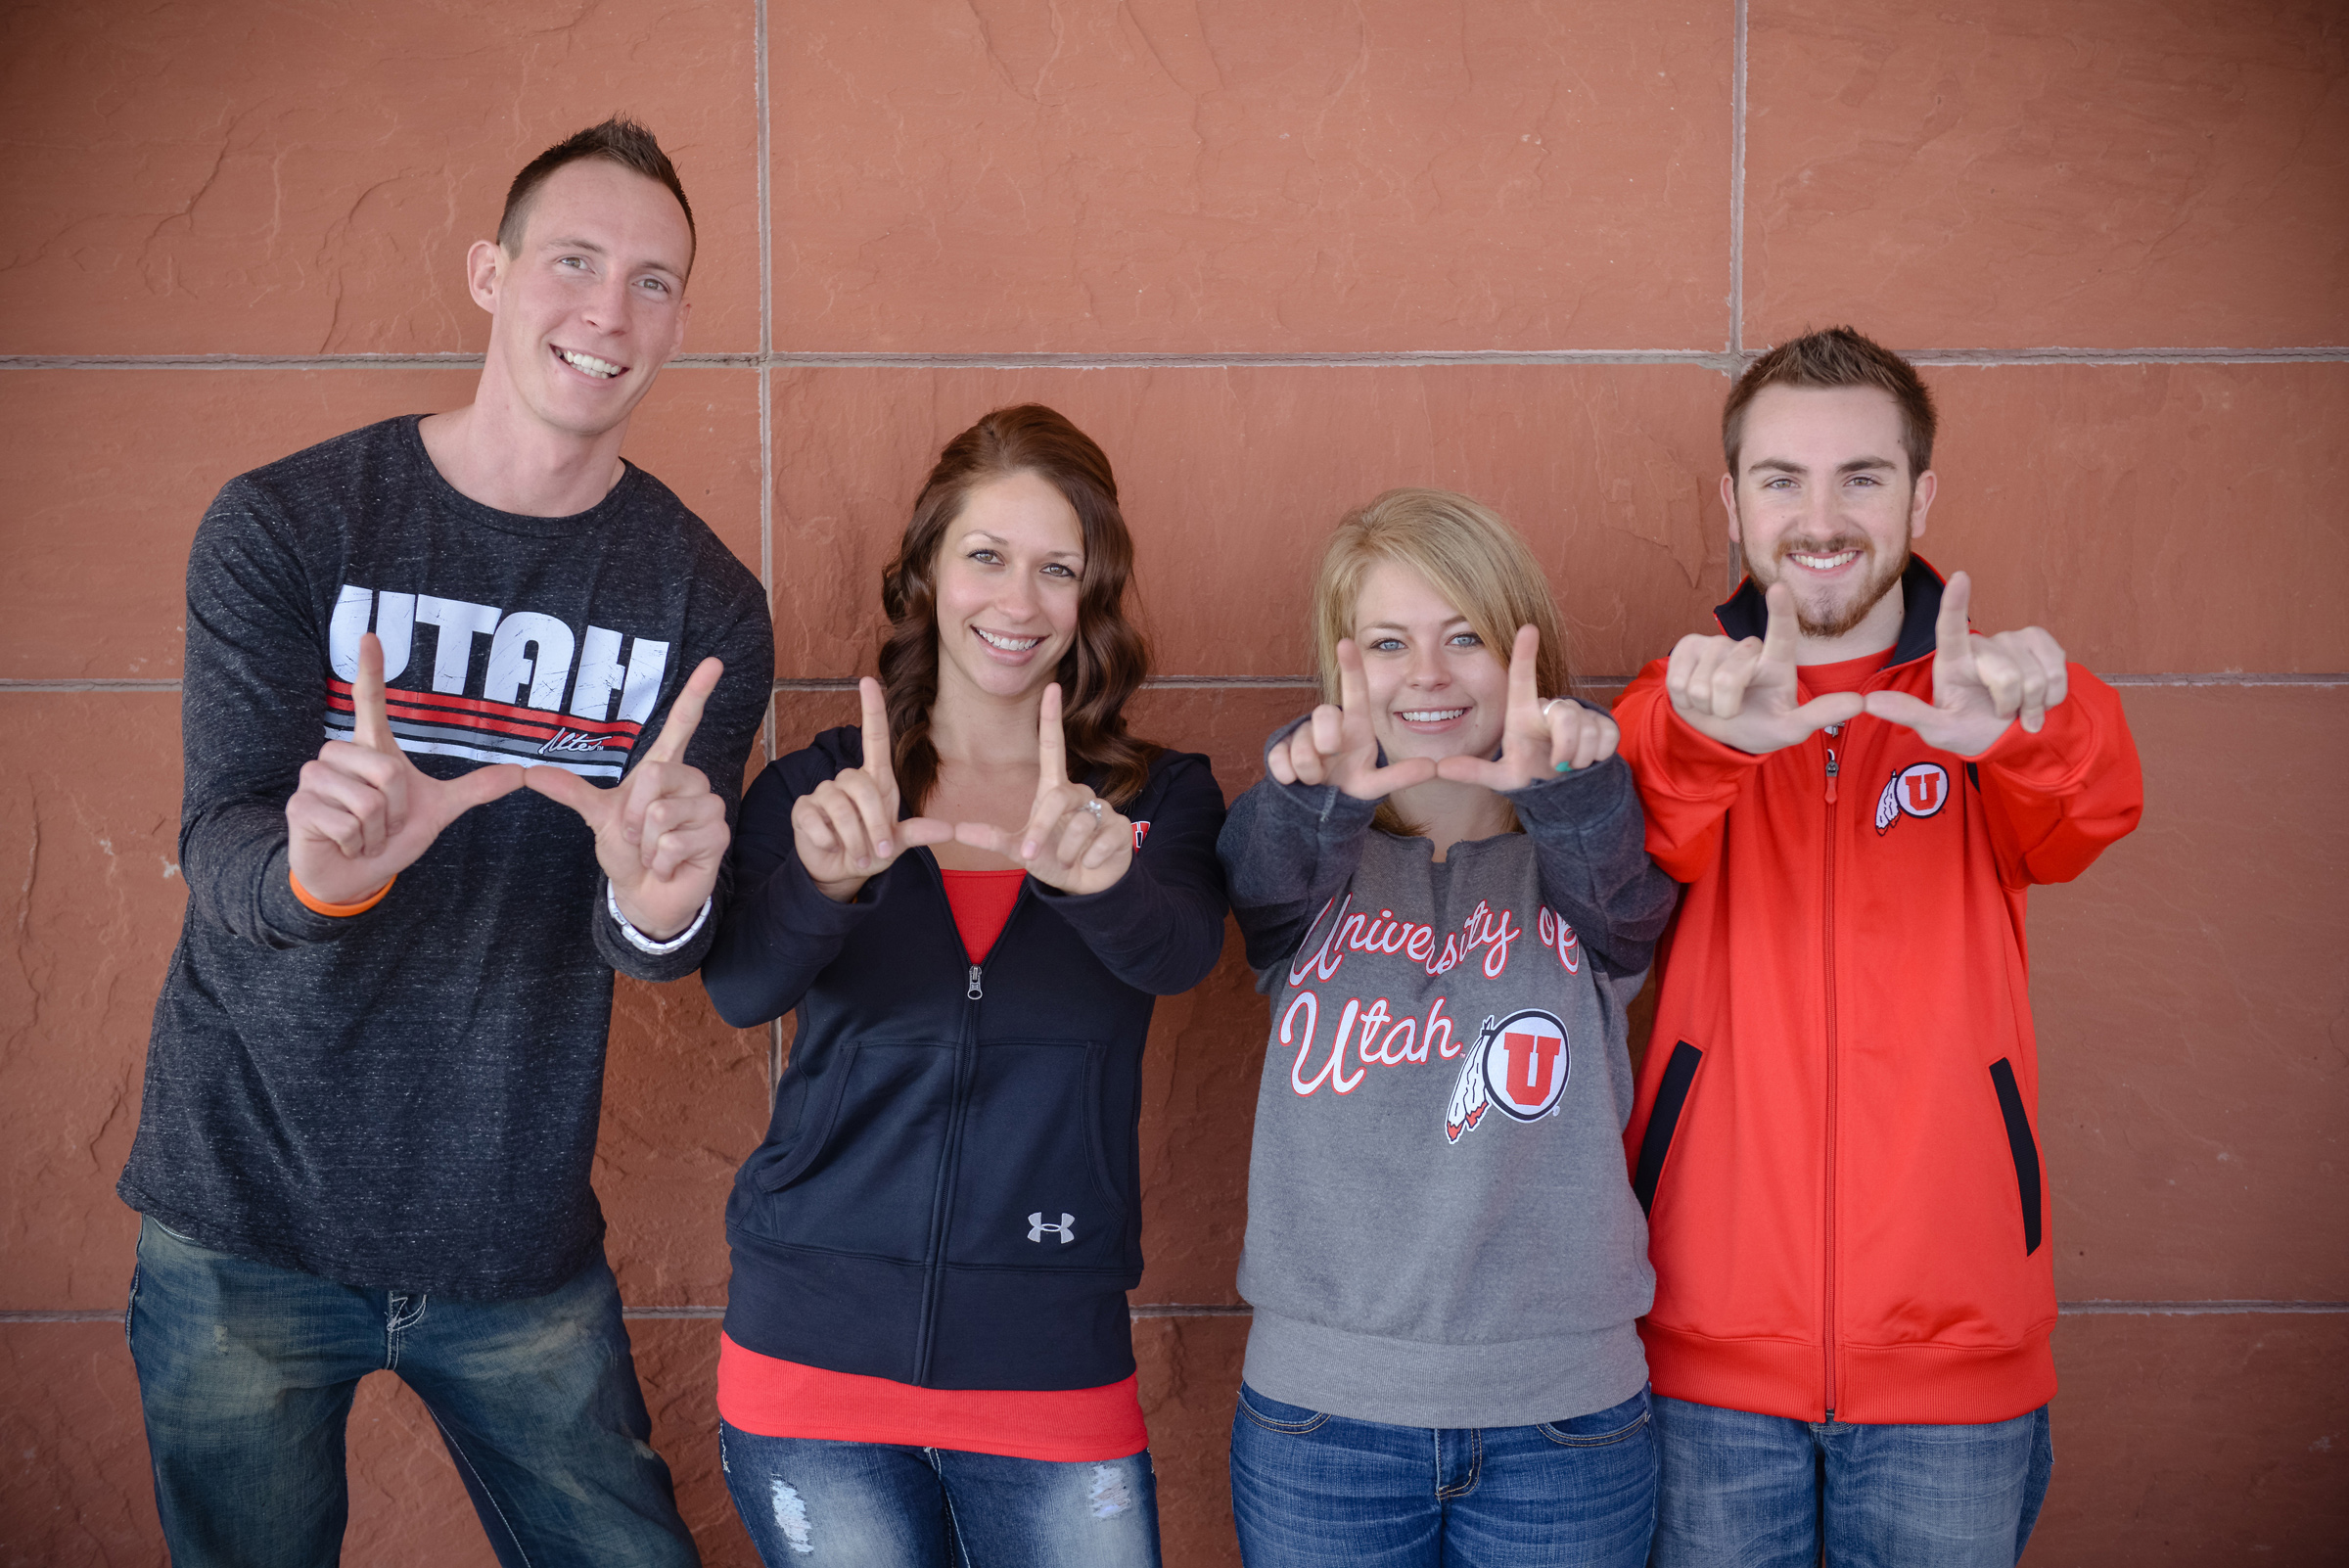 Jordan and Alexandria (left) and Ashley and Colton are the finalists for the 2014 Ultimate Utah Wedding. The winning couple will be married on March 8 at the Rice-Eccles Stadium. The public participates in planning their wedding by voting on everything from the dress to the cake.